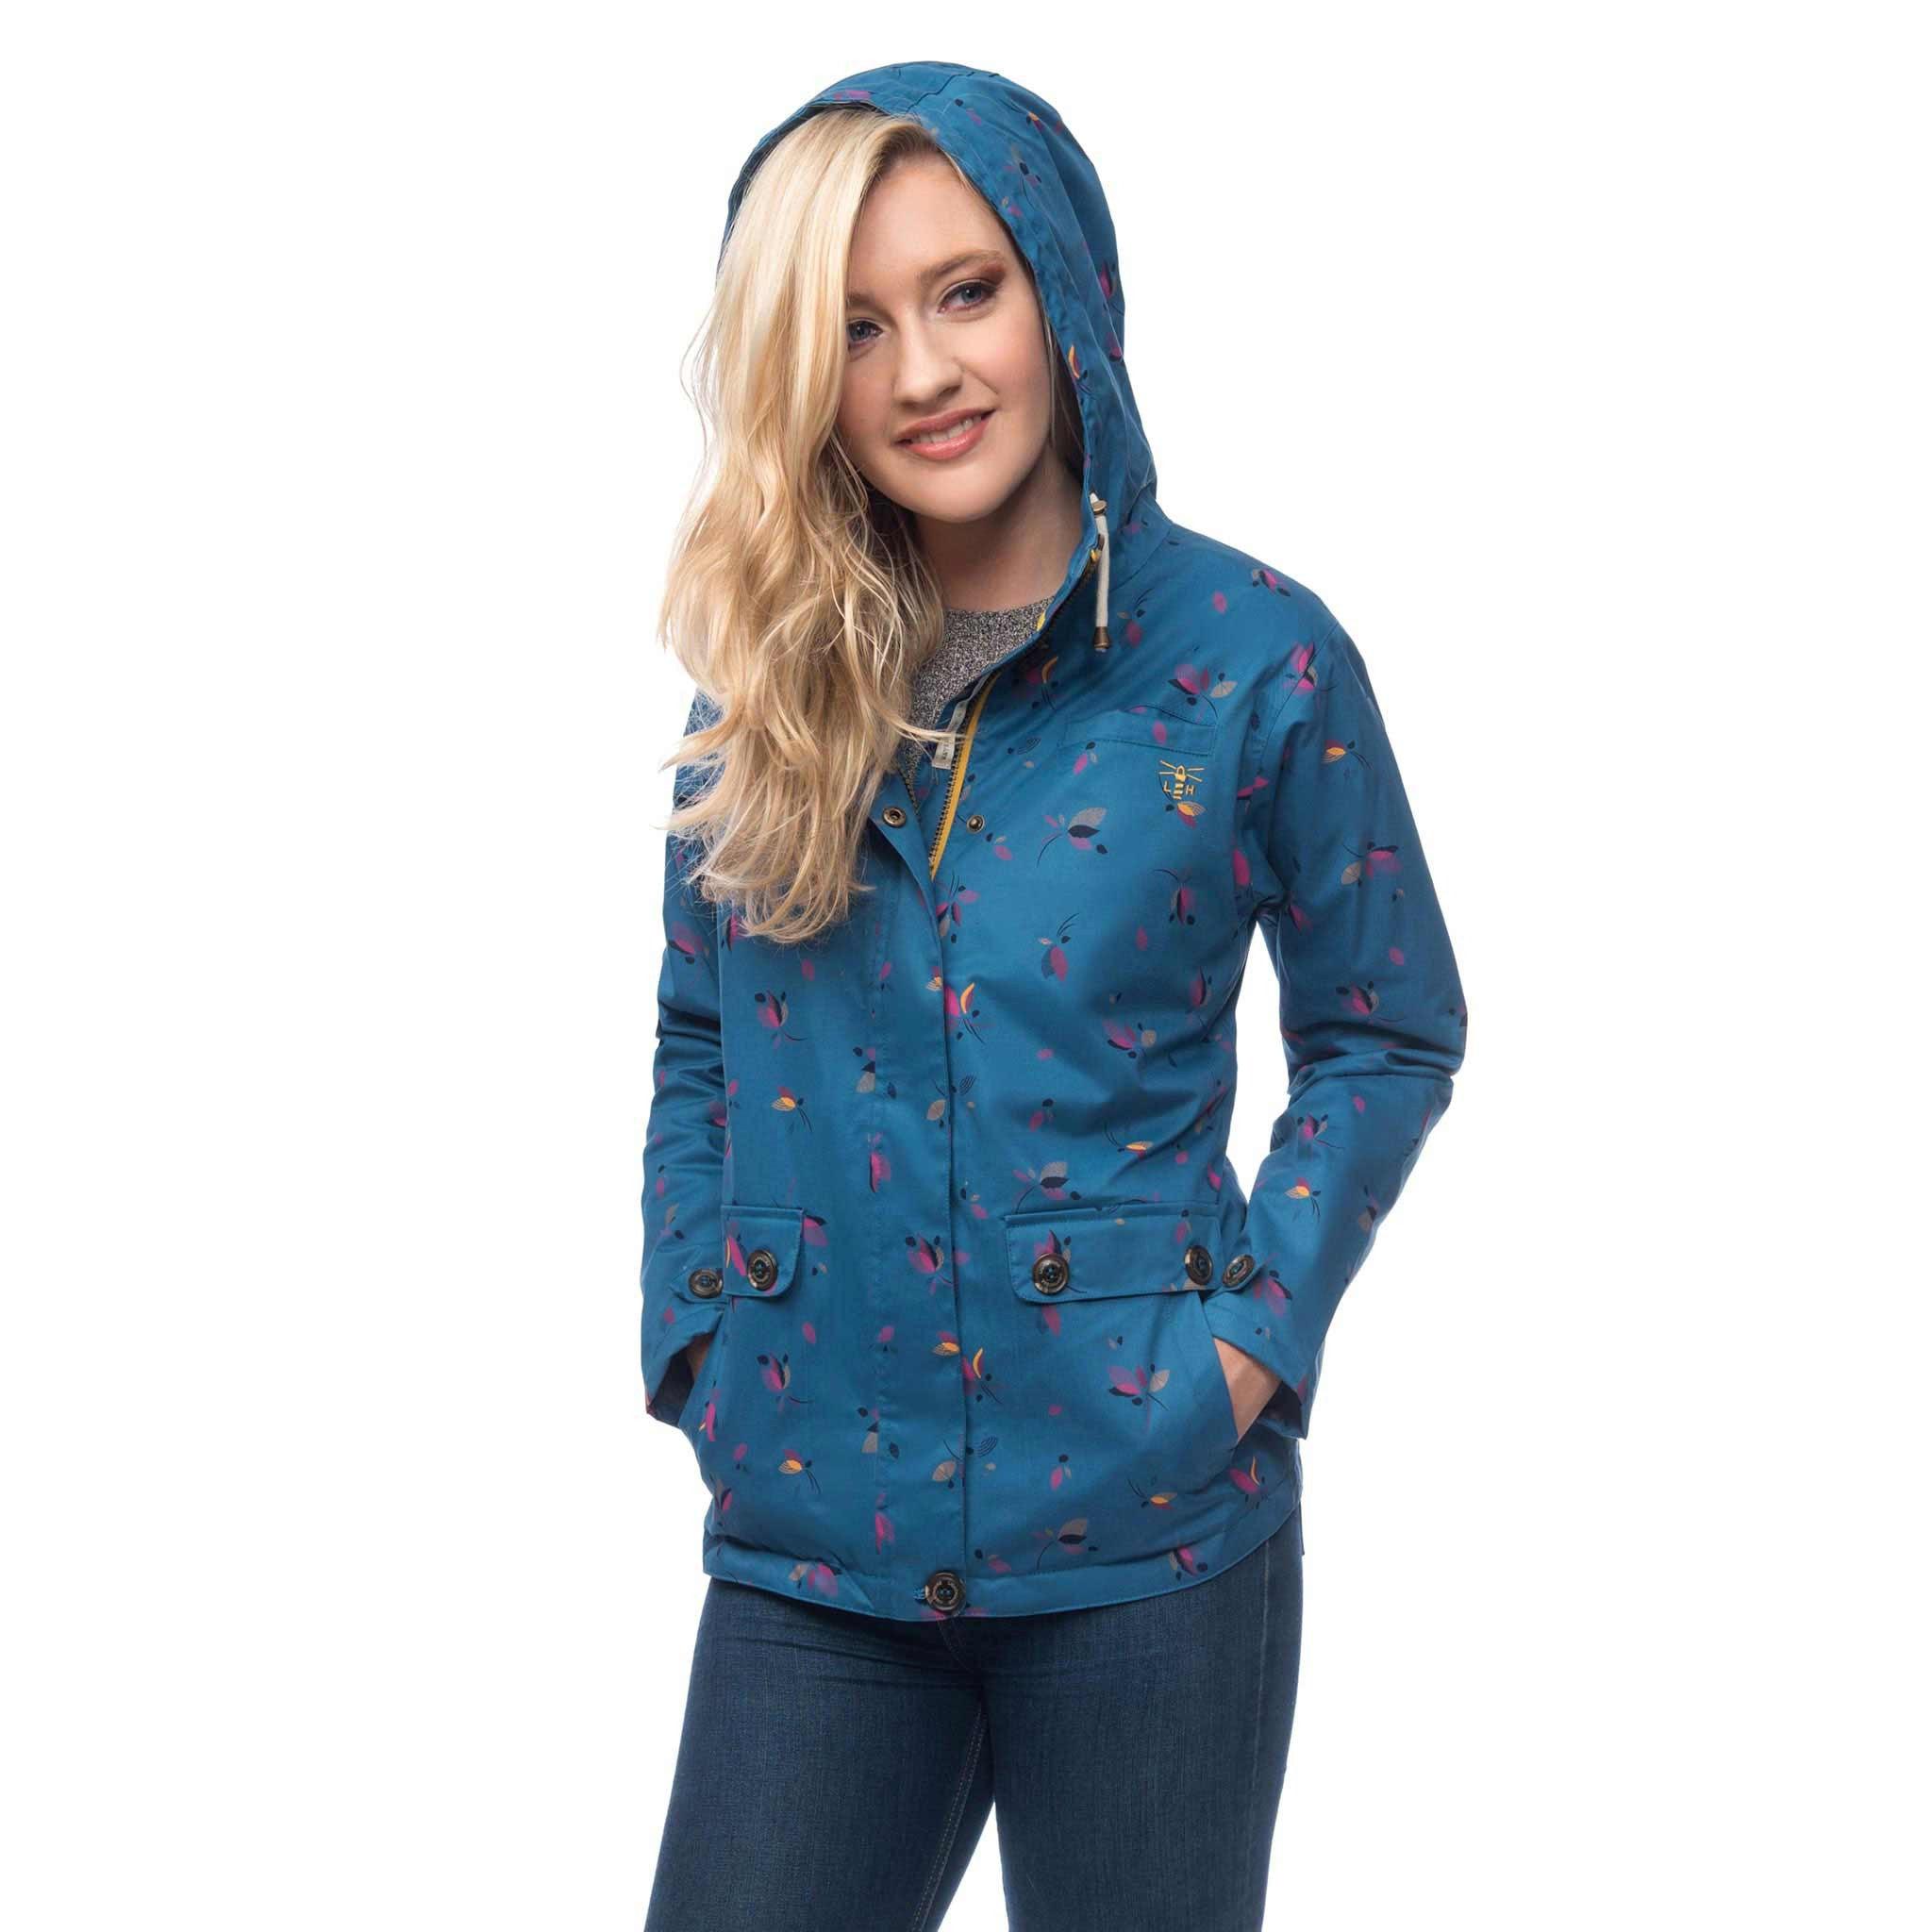 Lighthouse Siena Womens Waterproof Hooded Jacket in blue. Zipped & Buttoned. Hood up. Hands in pockets.